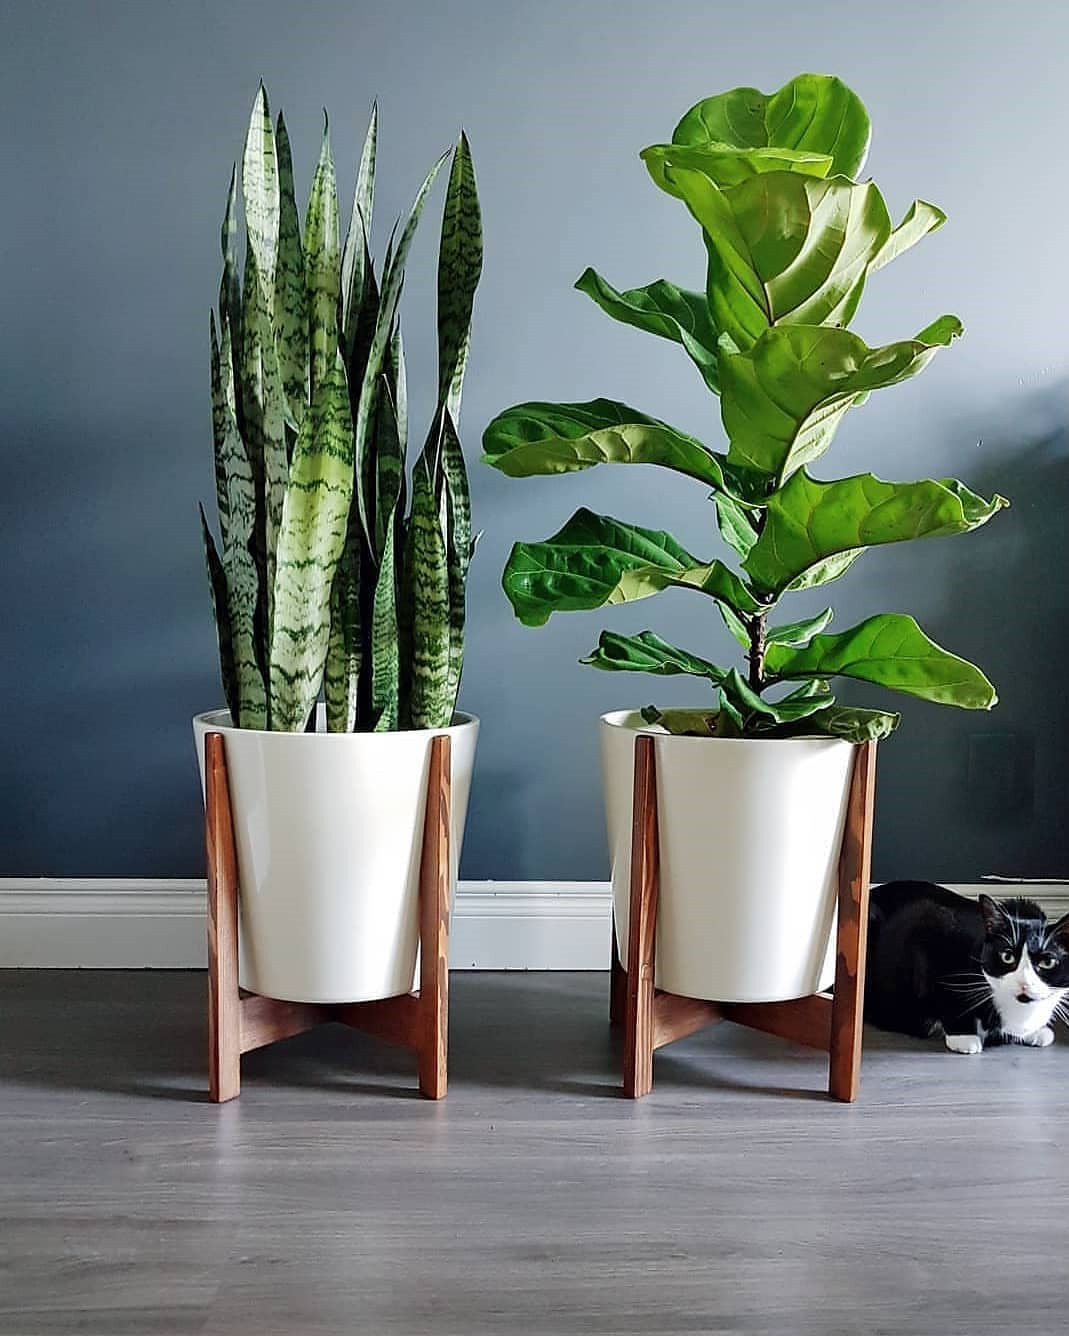 45 Beautiful Indoor Plant Ideas